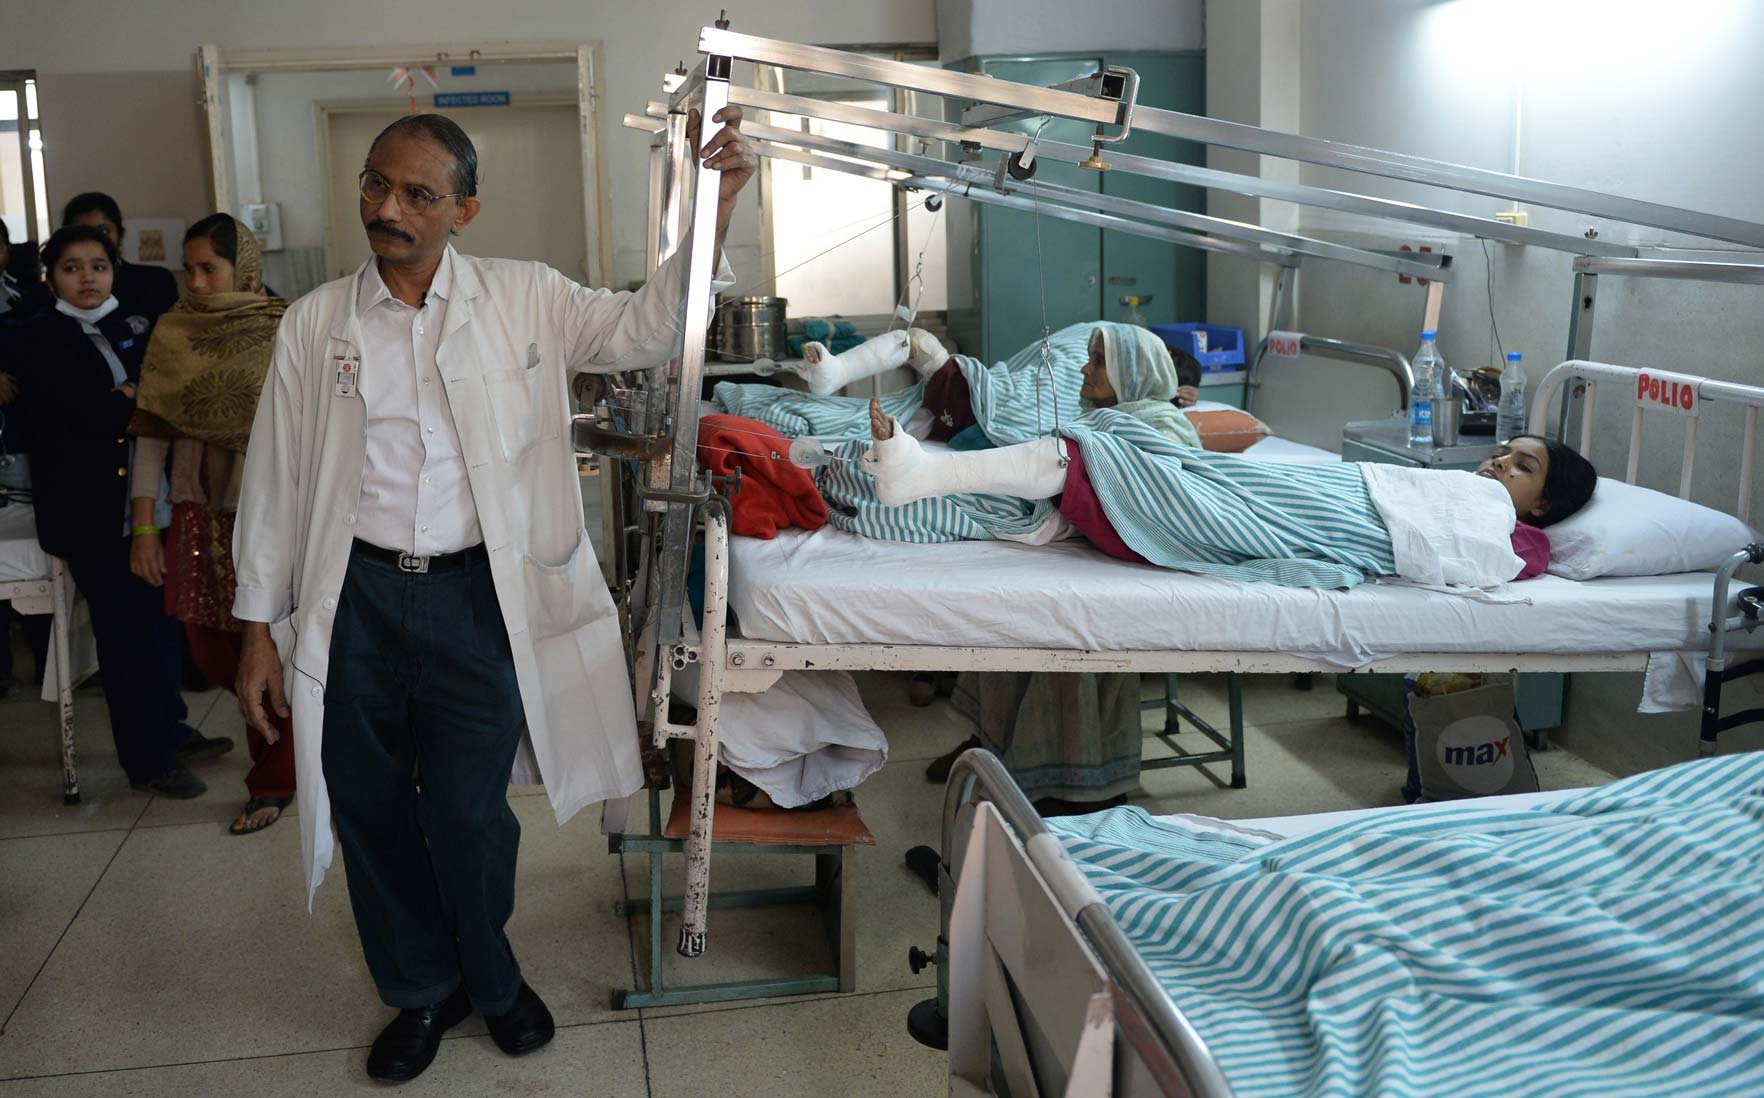 Indian polio patients undergoing treatment at a hospital in New Delhi